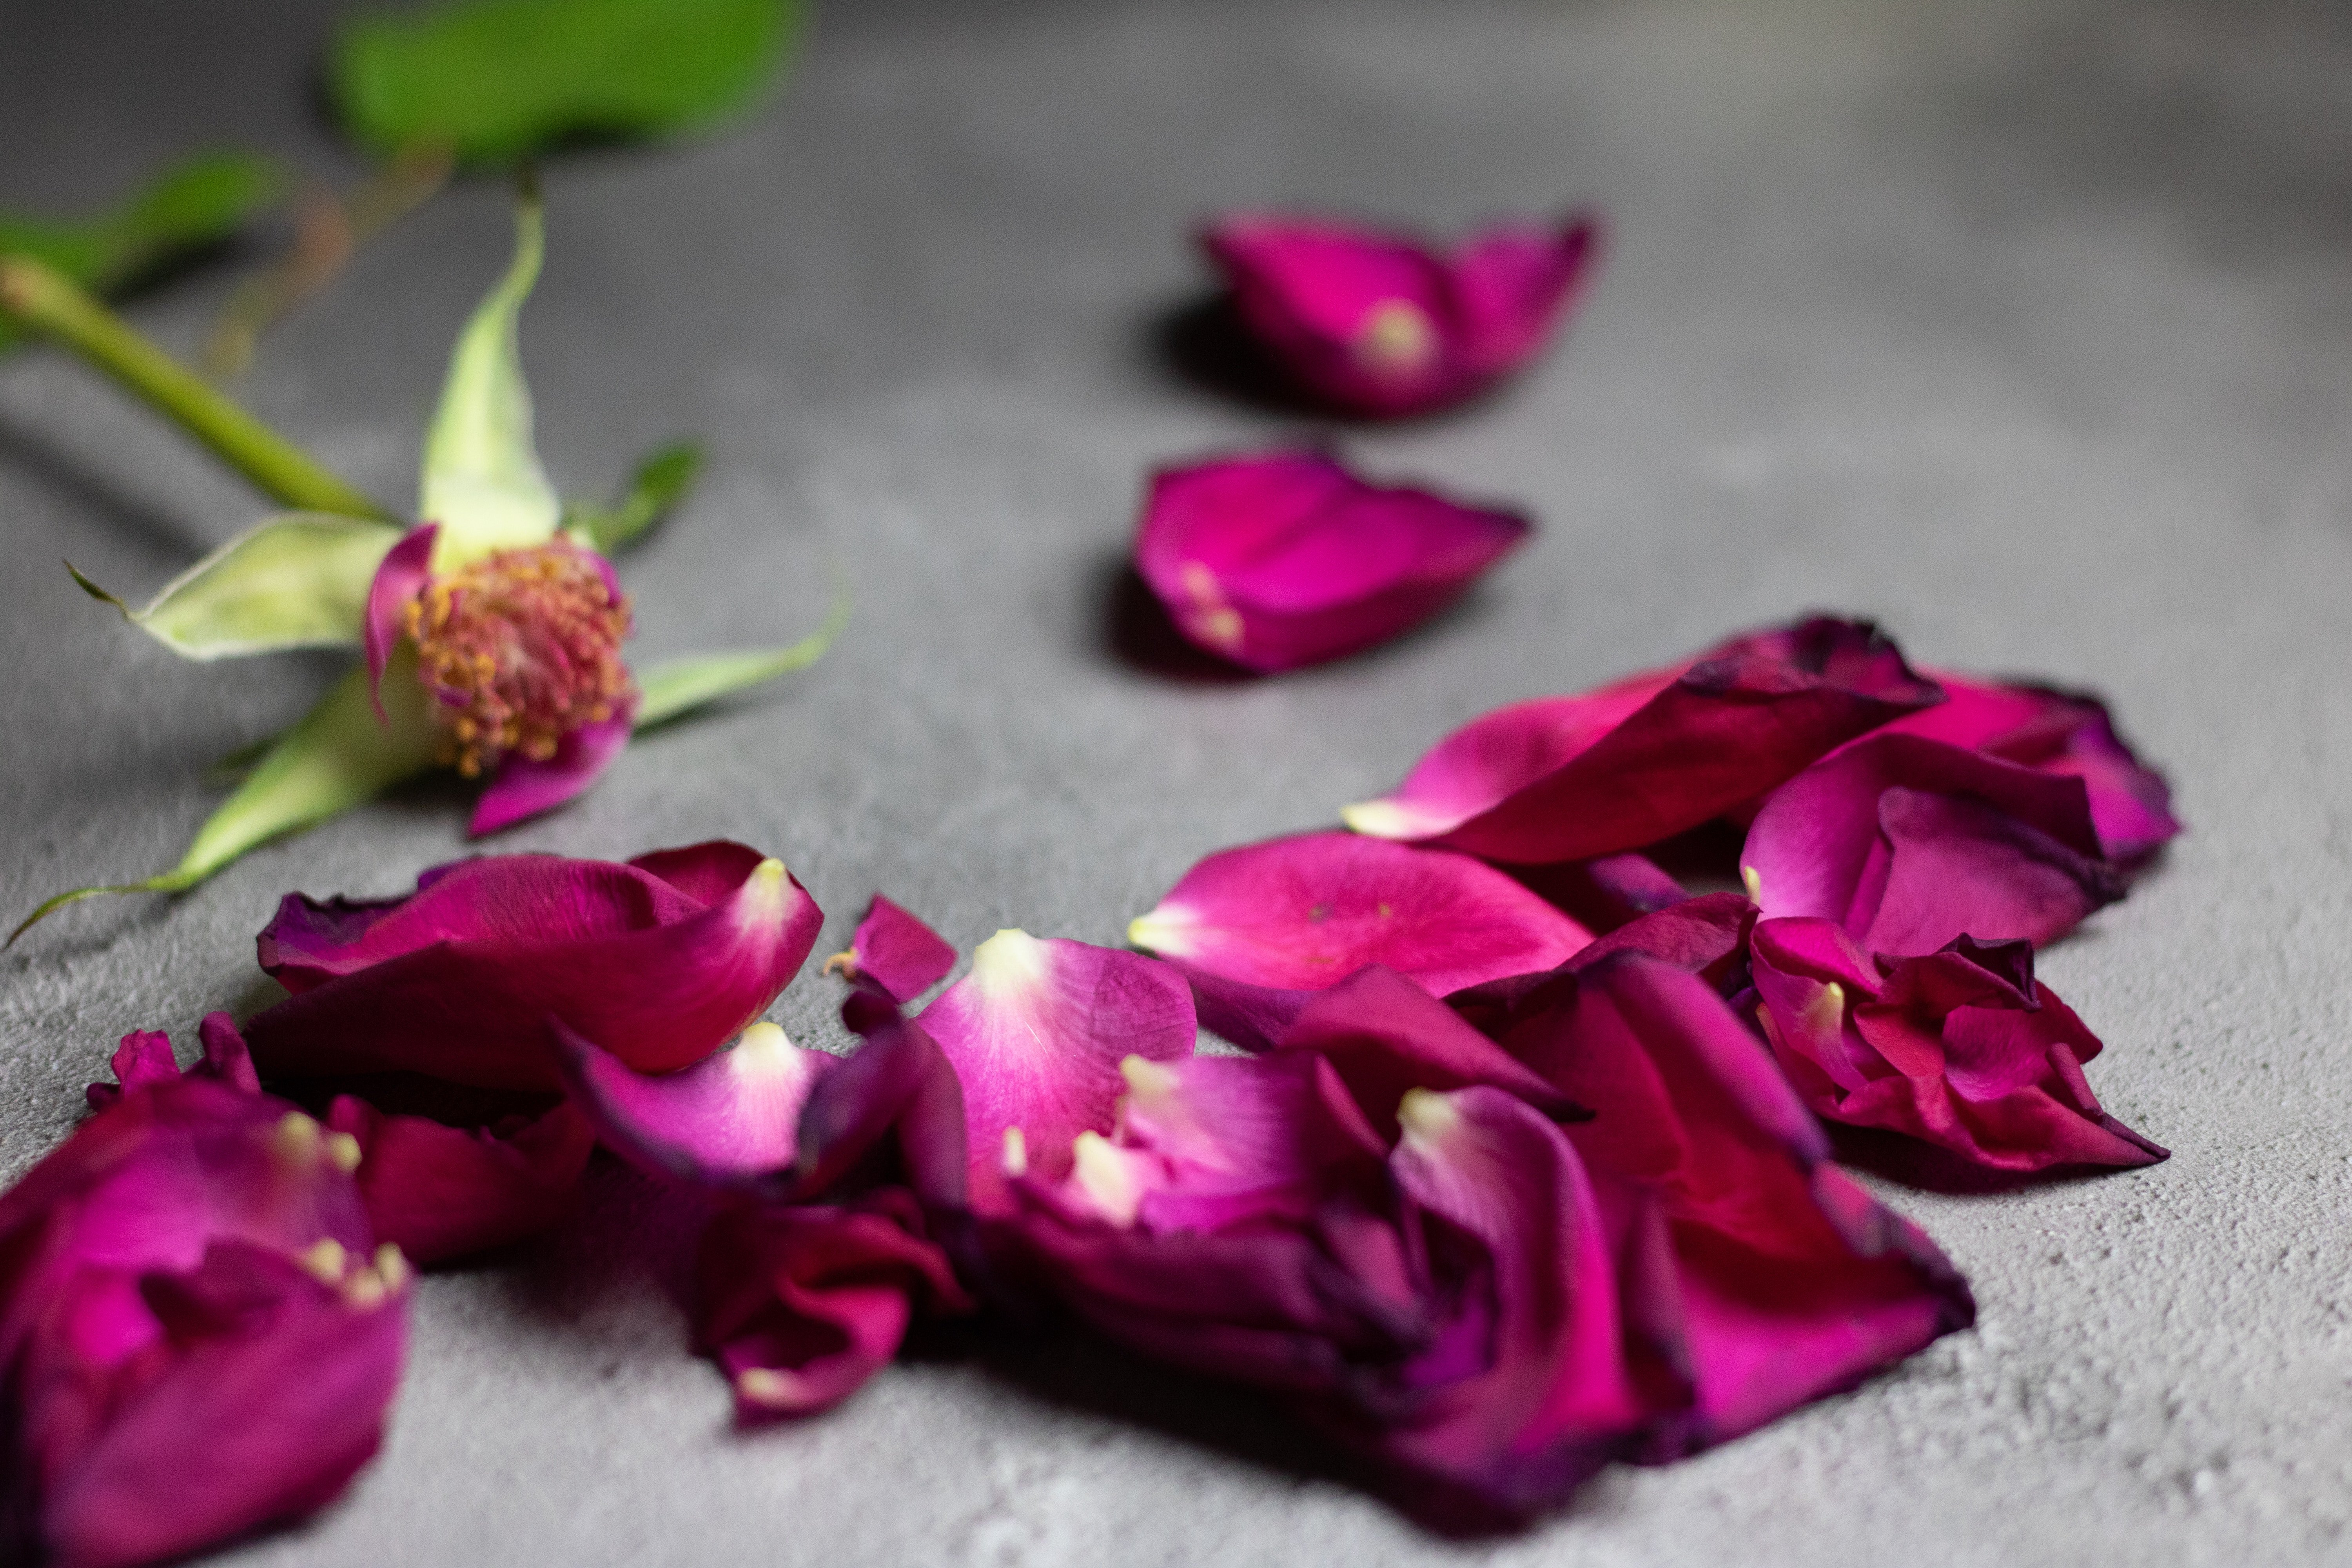 Discarded flowers | Unsplash